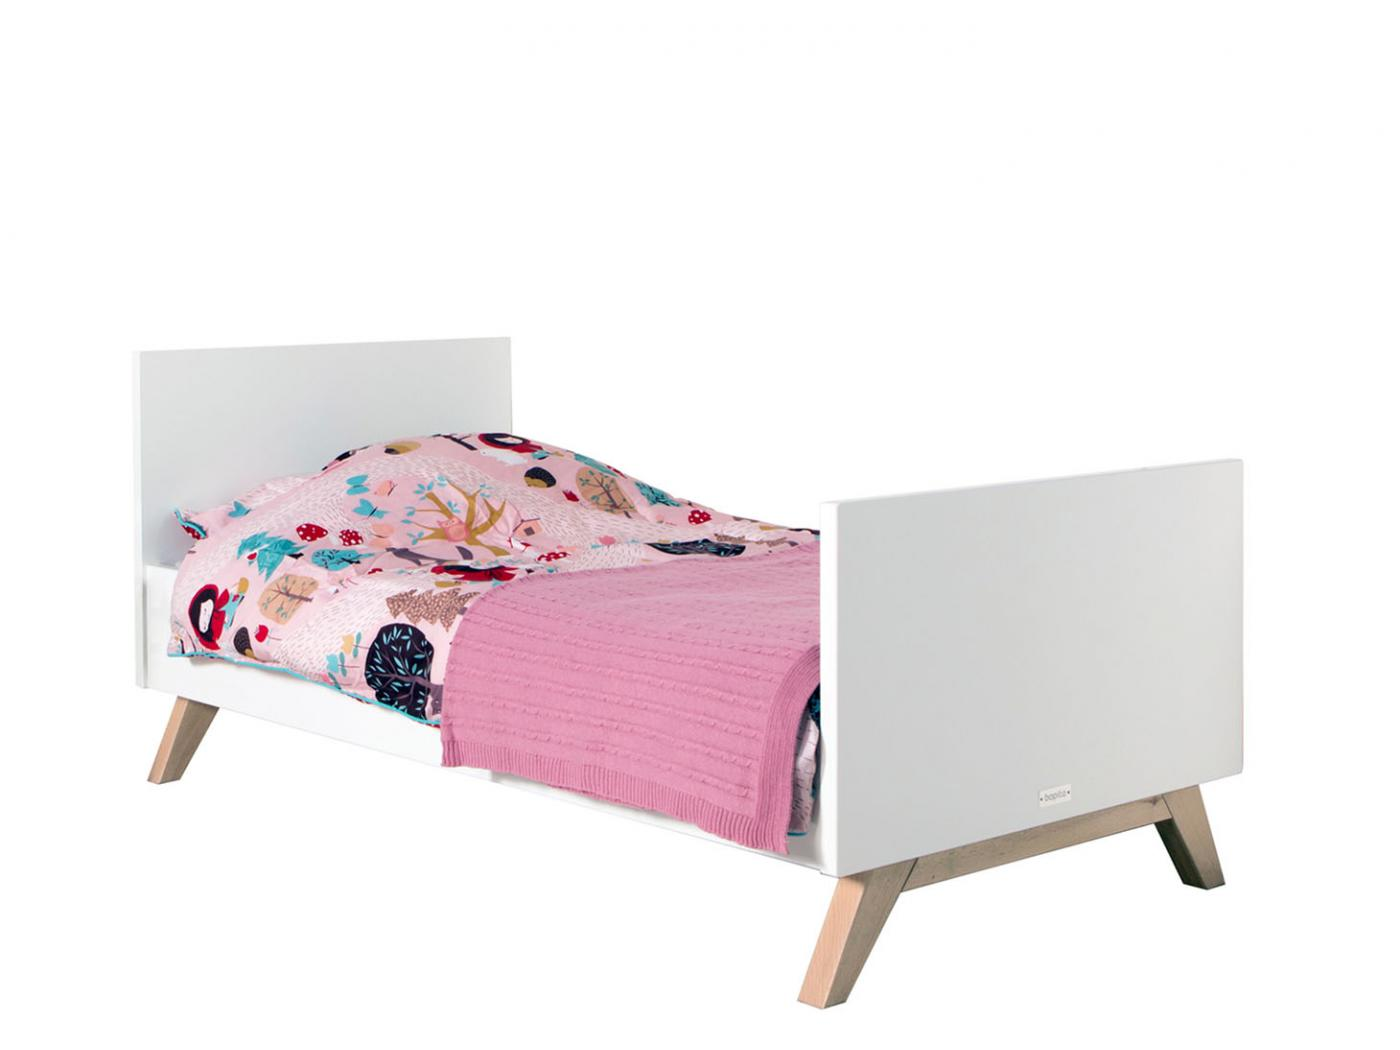 bopita lit enfant lynn rose clair 70x150cm. Black Bedroom Furniture Sets. Home Design Ideas